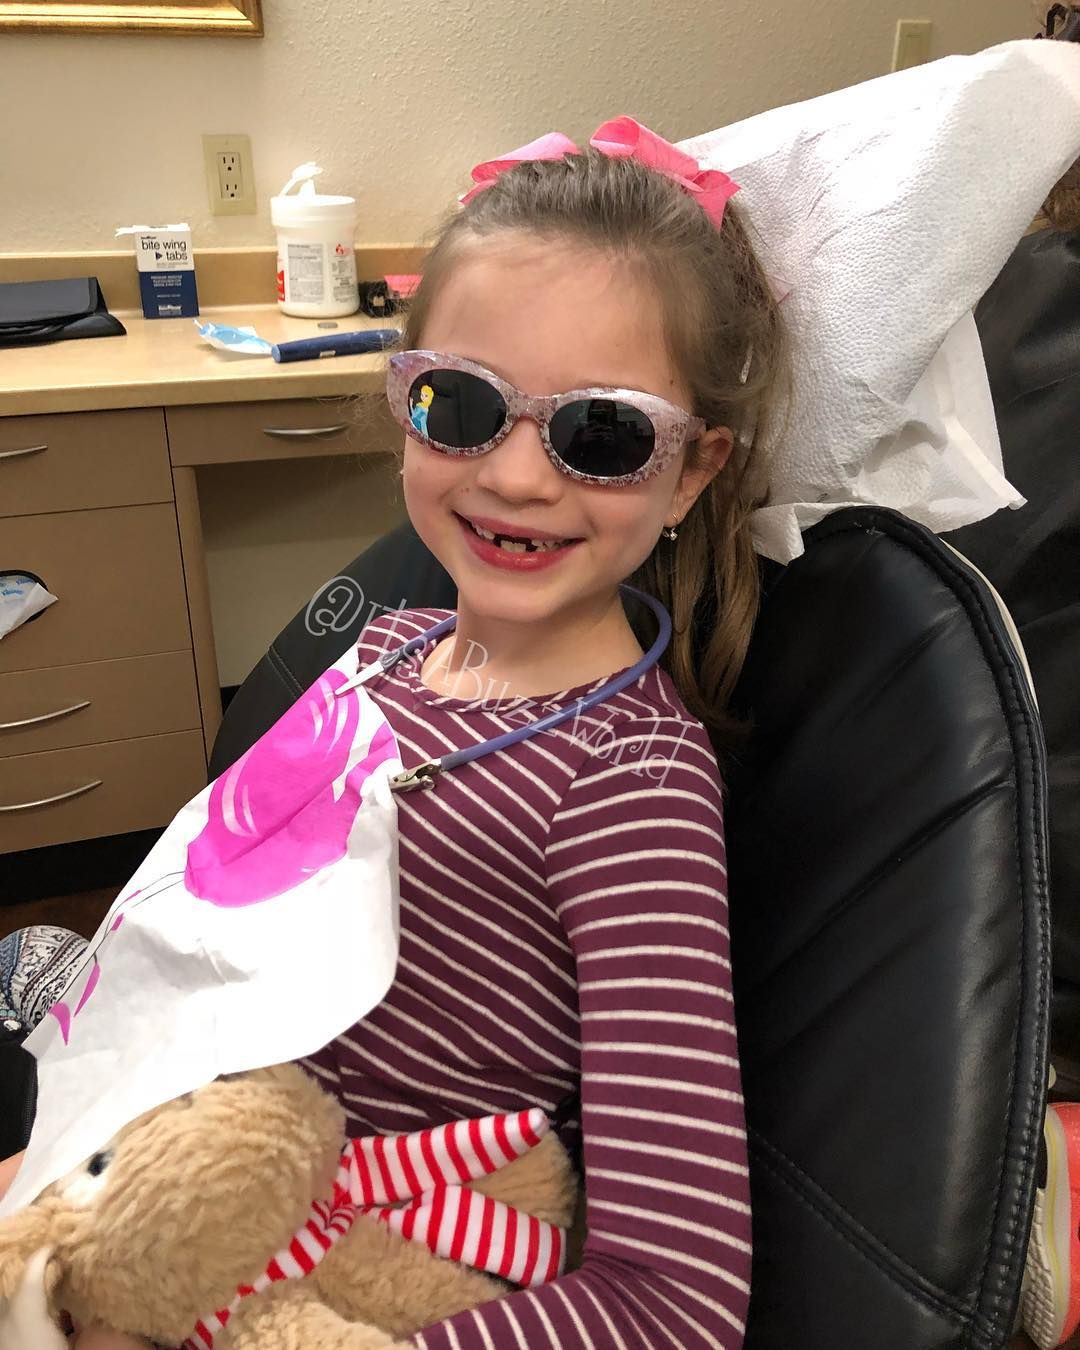 So proud of this girl today No cavities she did Xrays and got